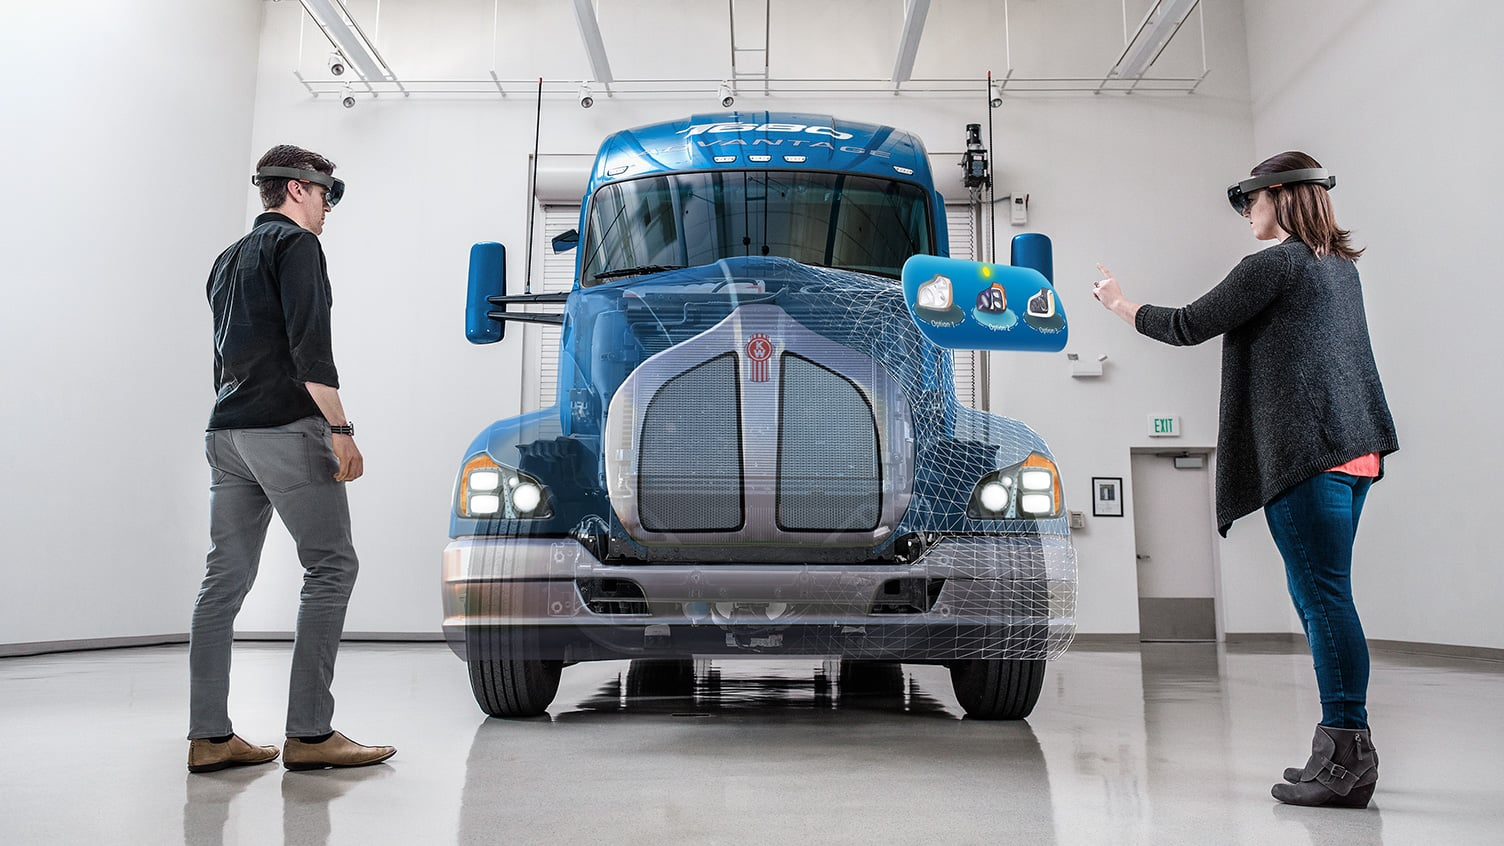 Man and woman wearing HoloLenses and working on a holographic body overlayed on a truck frame